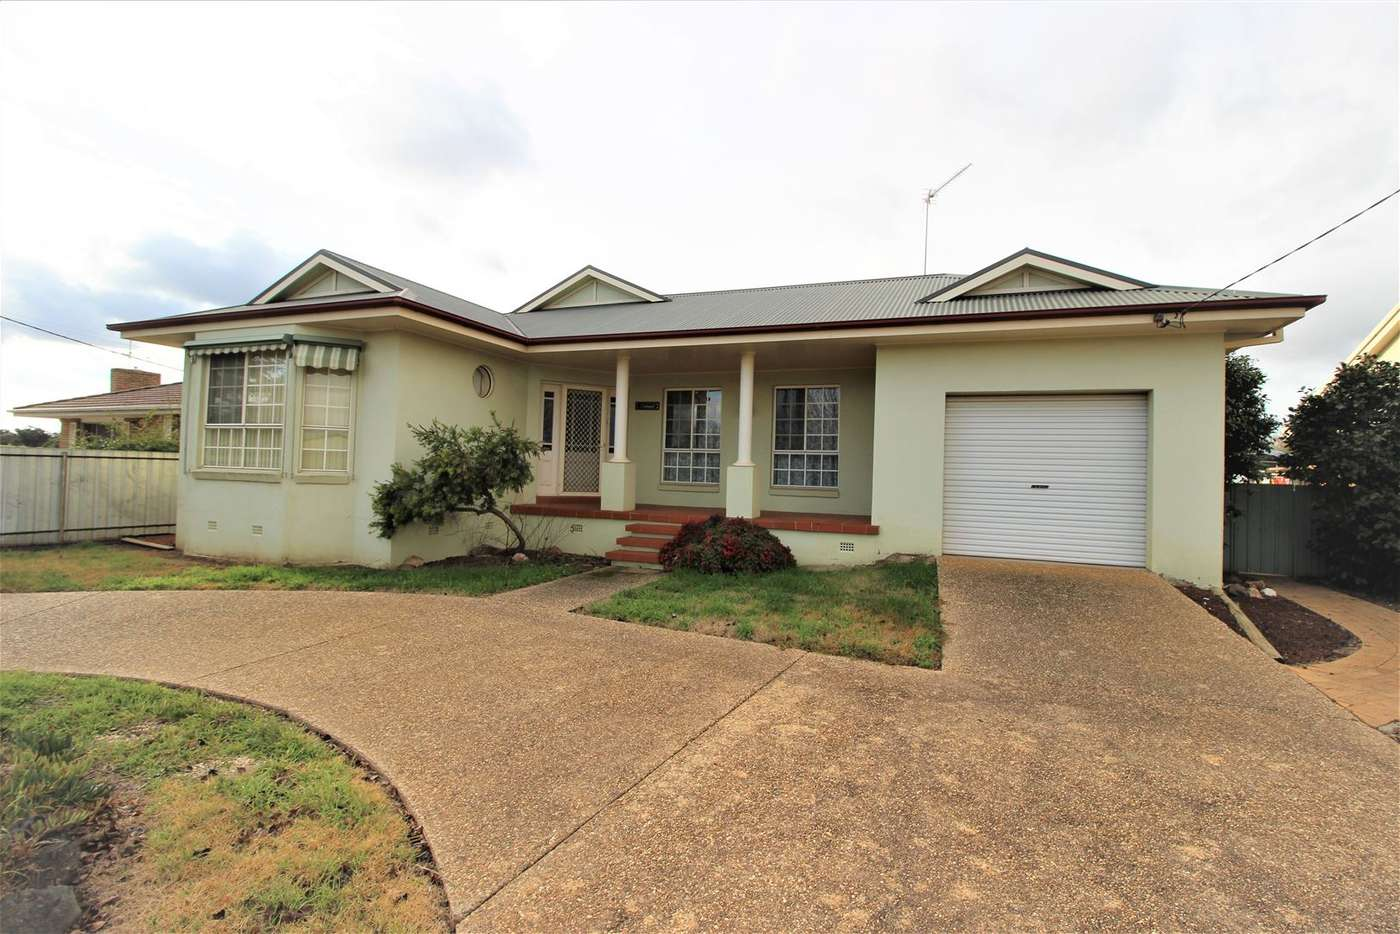 Main view of Homely house listing, 93 Adams Street, Cootamundra NSW 2590